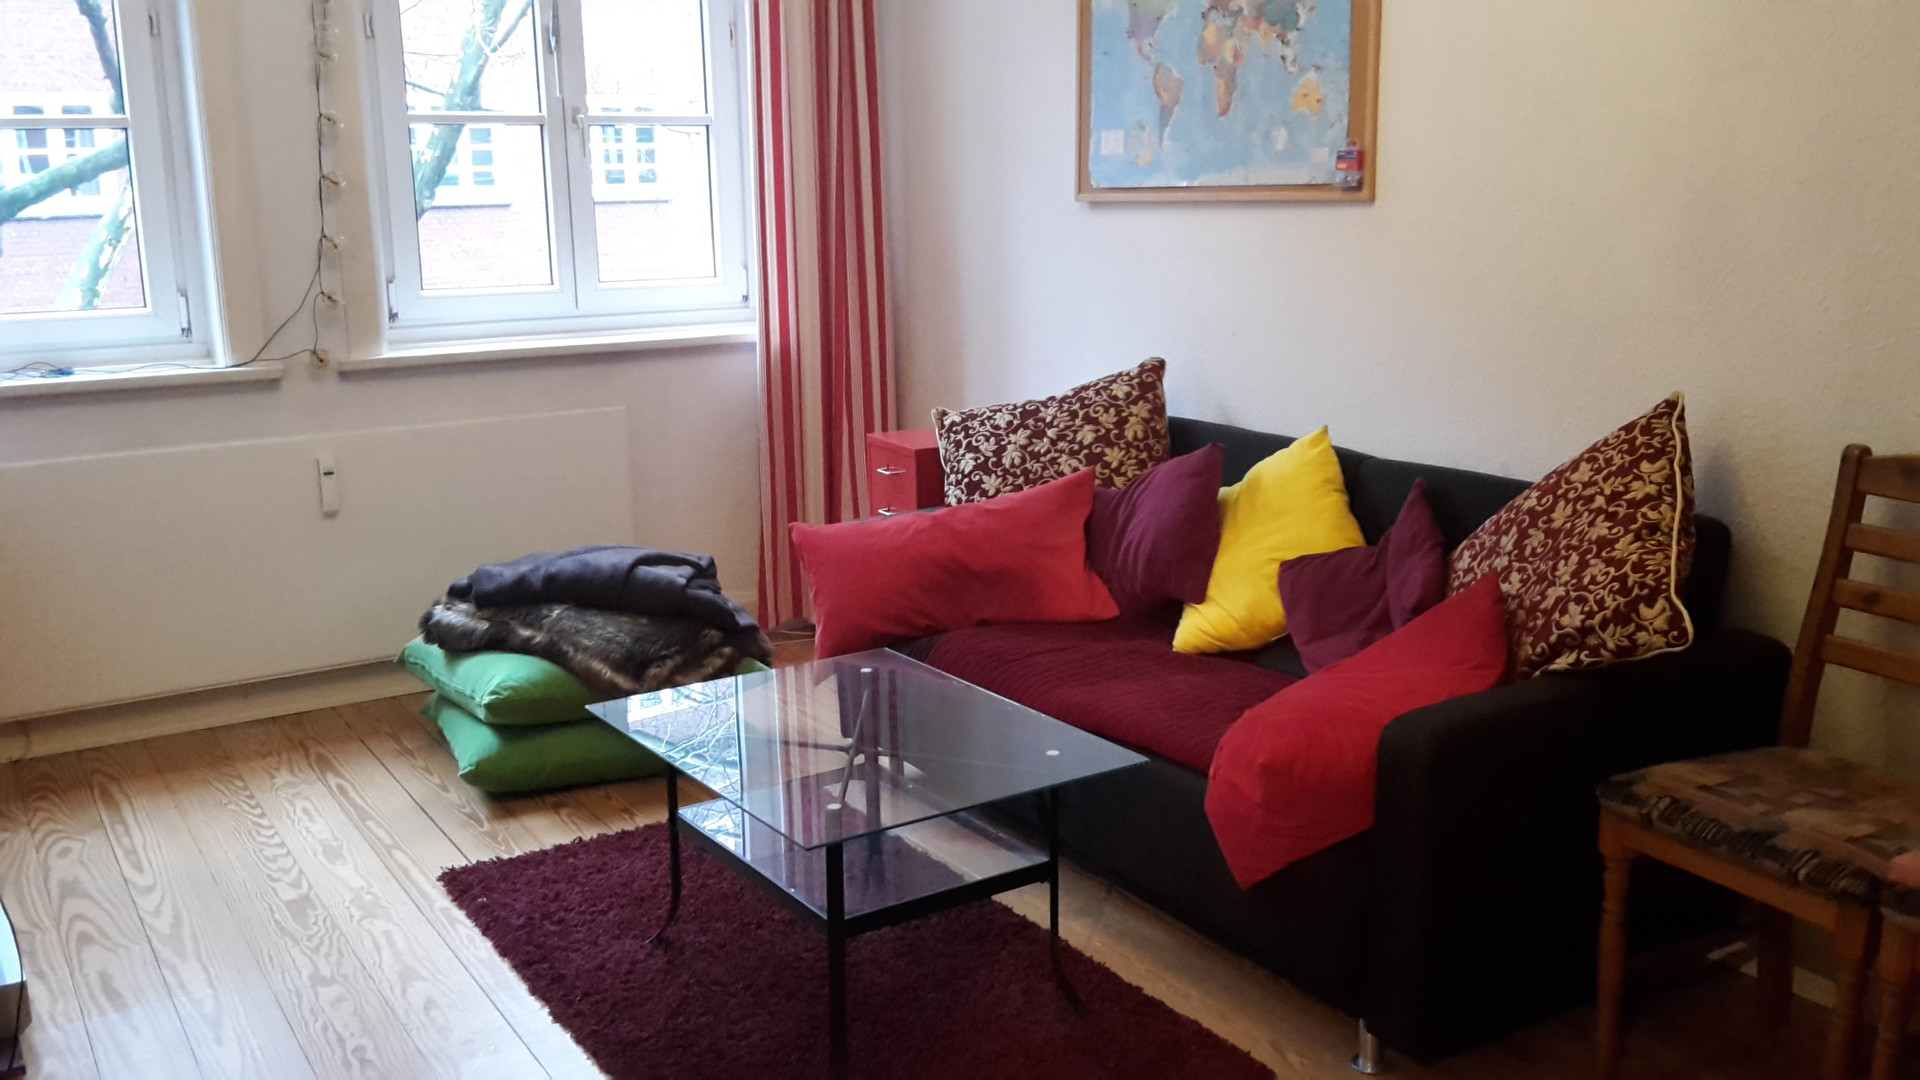 ... Lovely apartment in the city center for sublease from March 15th ...